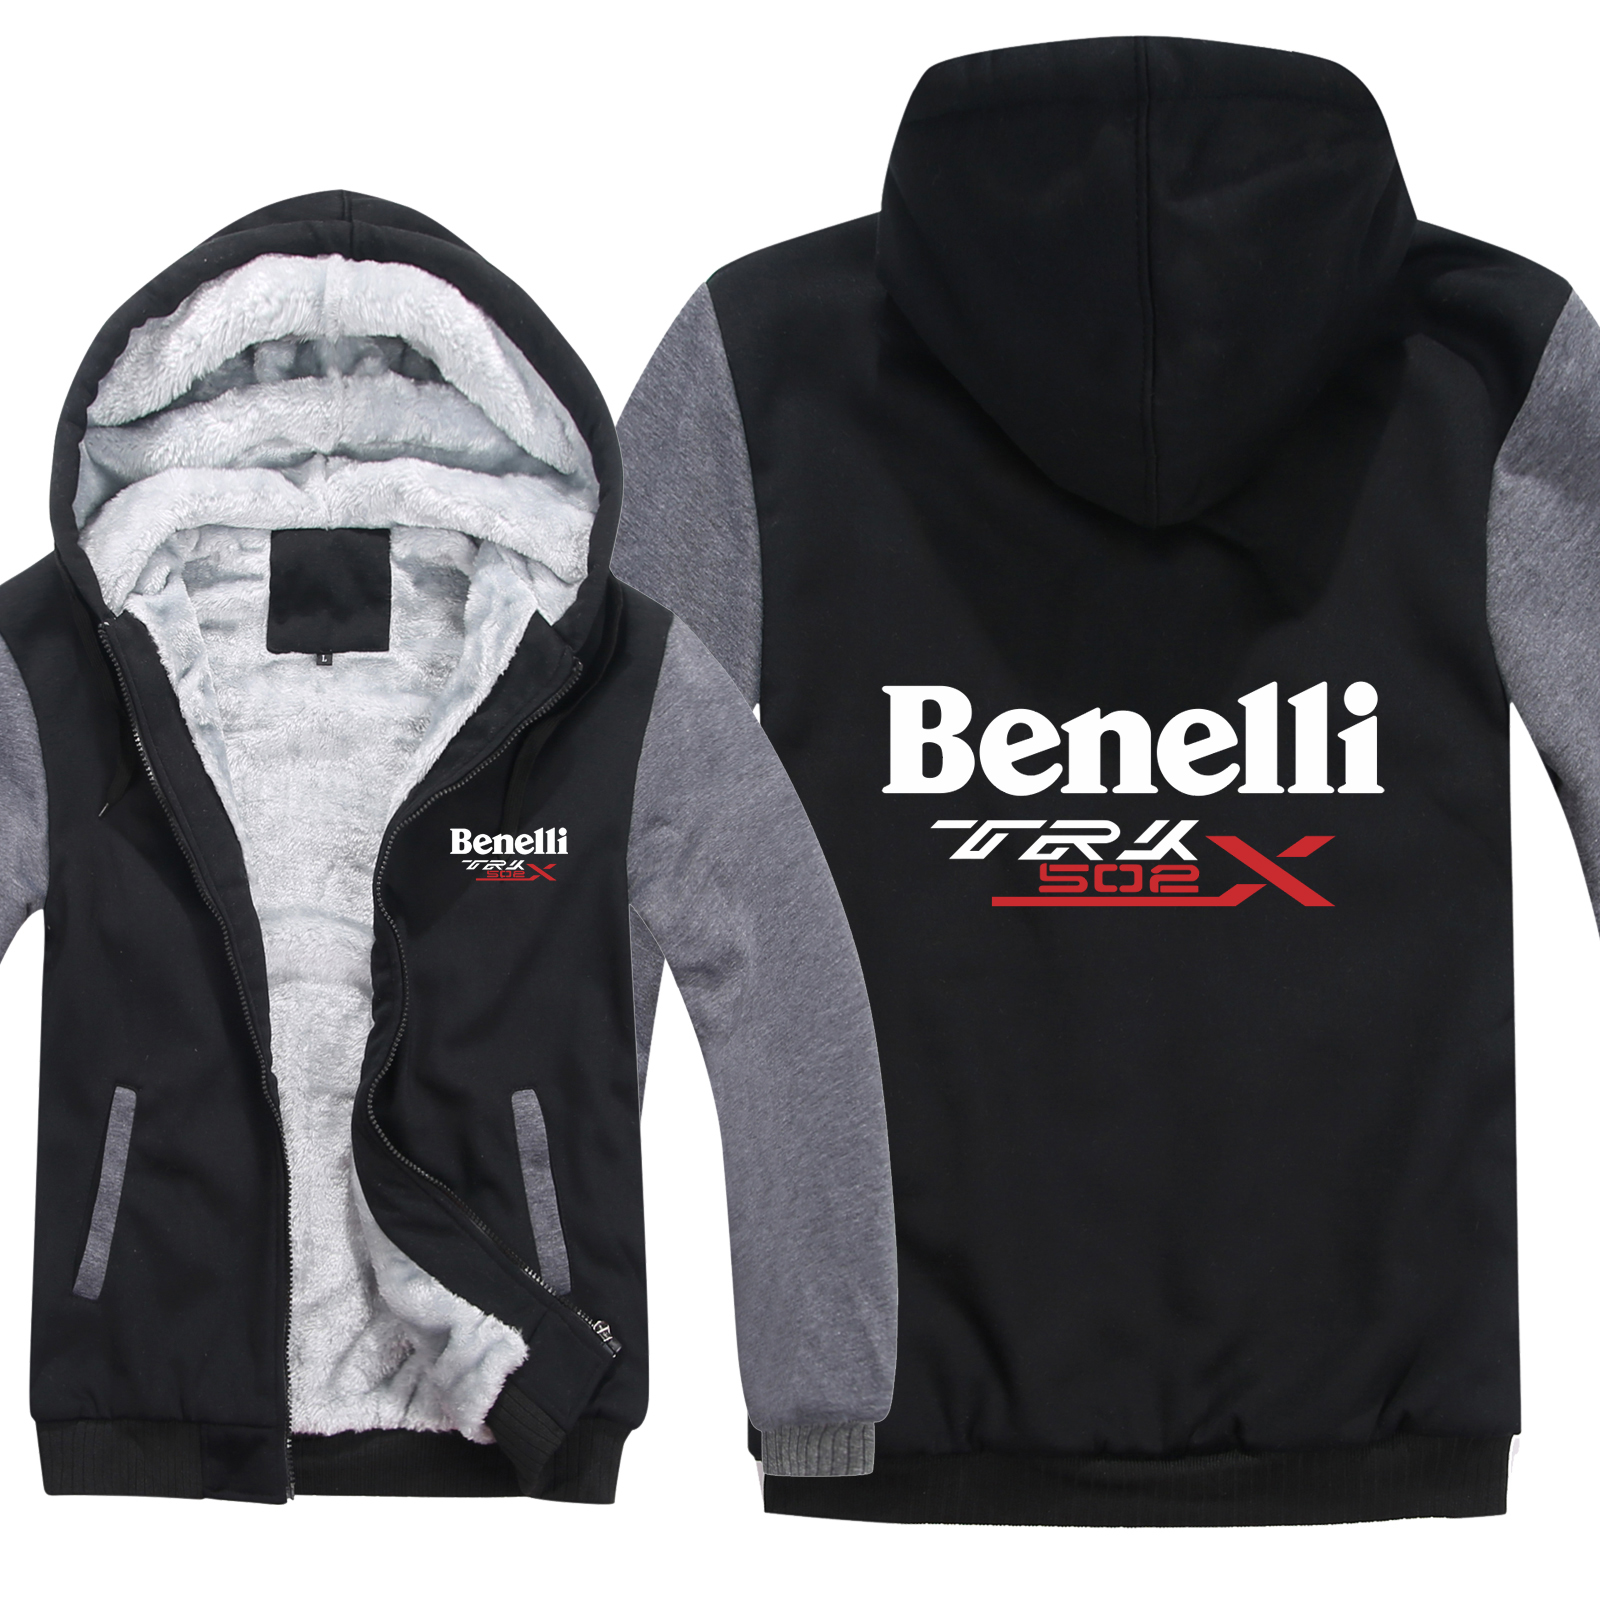 Cartoon Jacket Hoodies Sweatshirt Benelli Trk Winter Zipper Fleece Thicken 502X title=